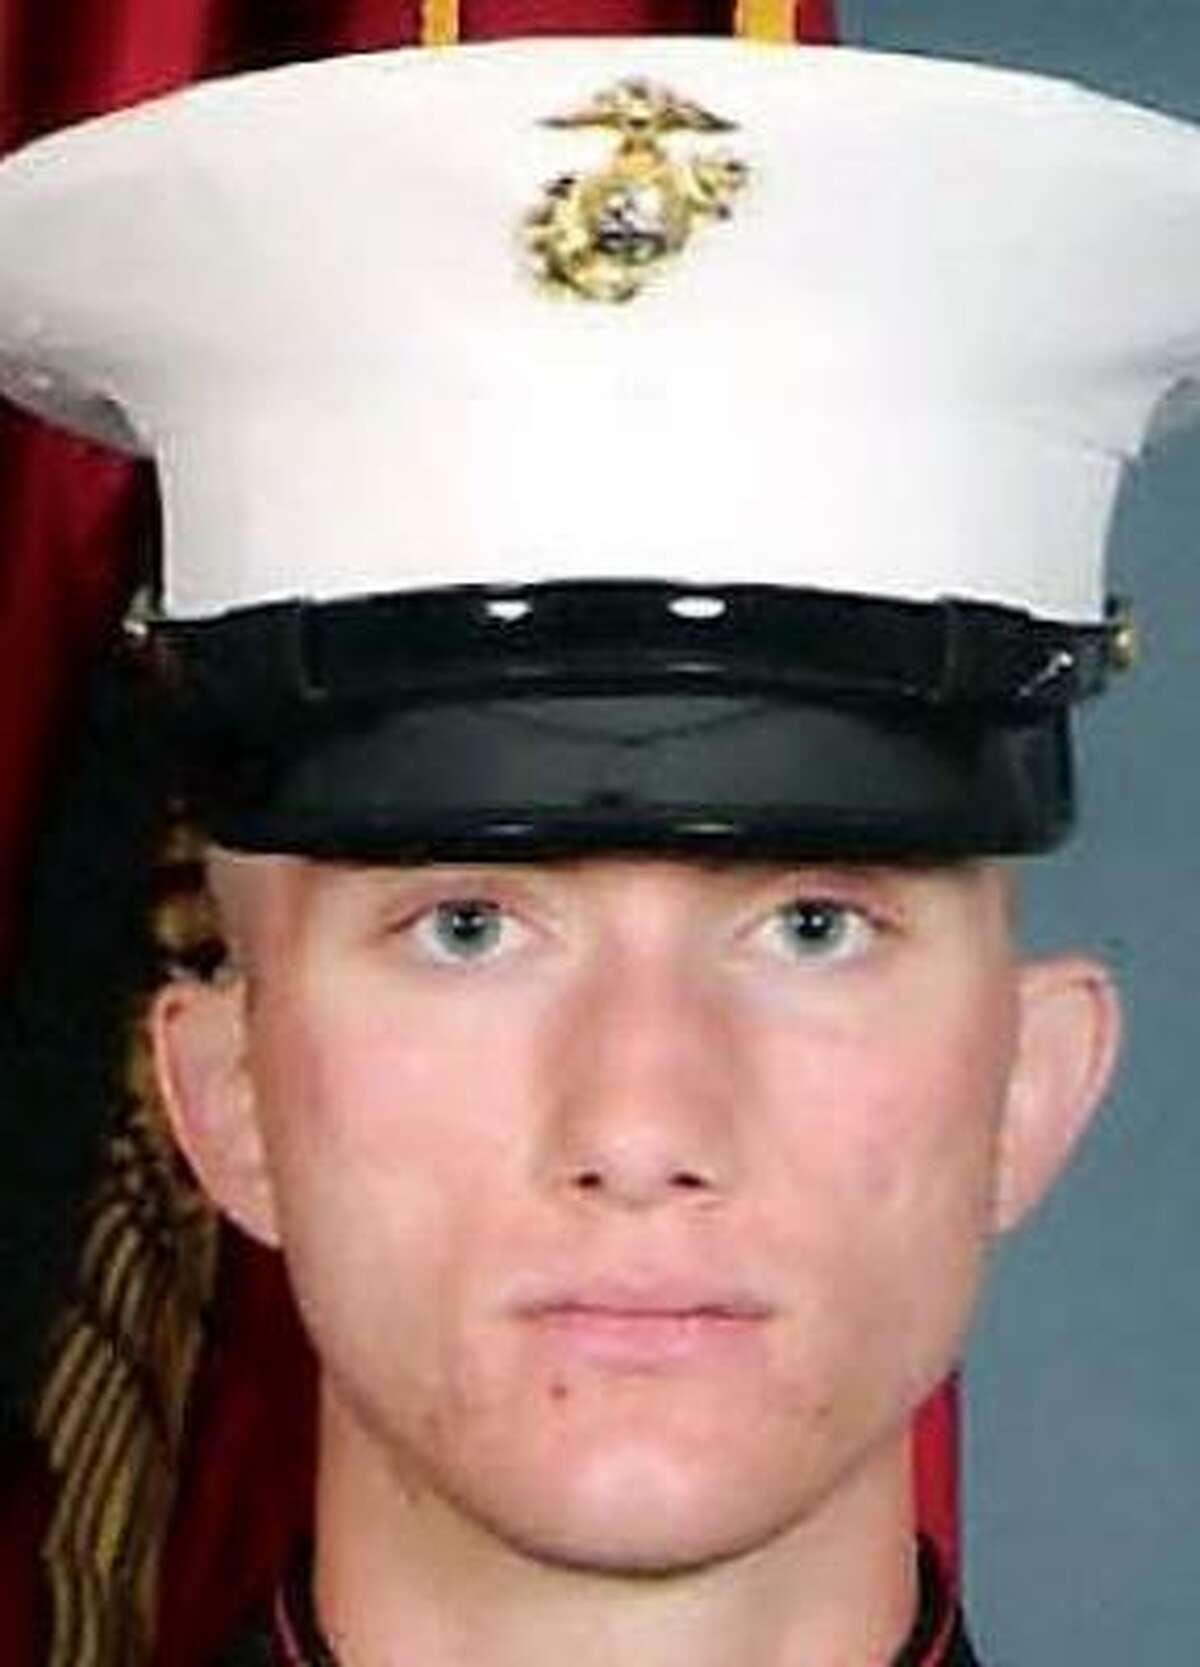 photo of Marine Lance Cpl. Jeremy Burris, whose funeral was held Tuesday, Oct. 16, in Liberty. He was killed in combat operations in Iraq on Oct. 8.